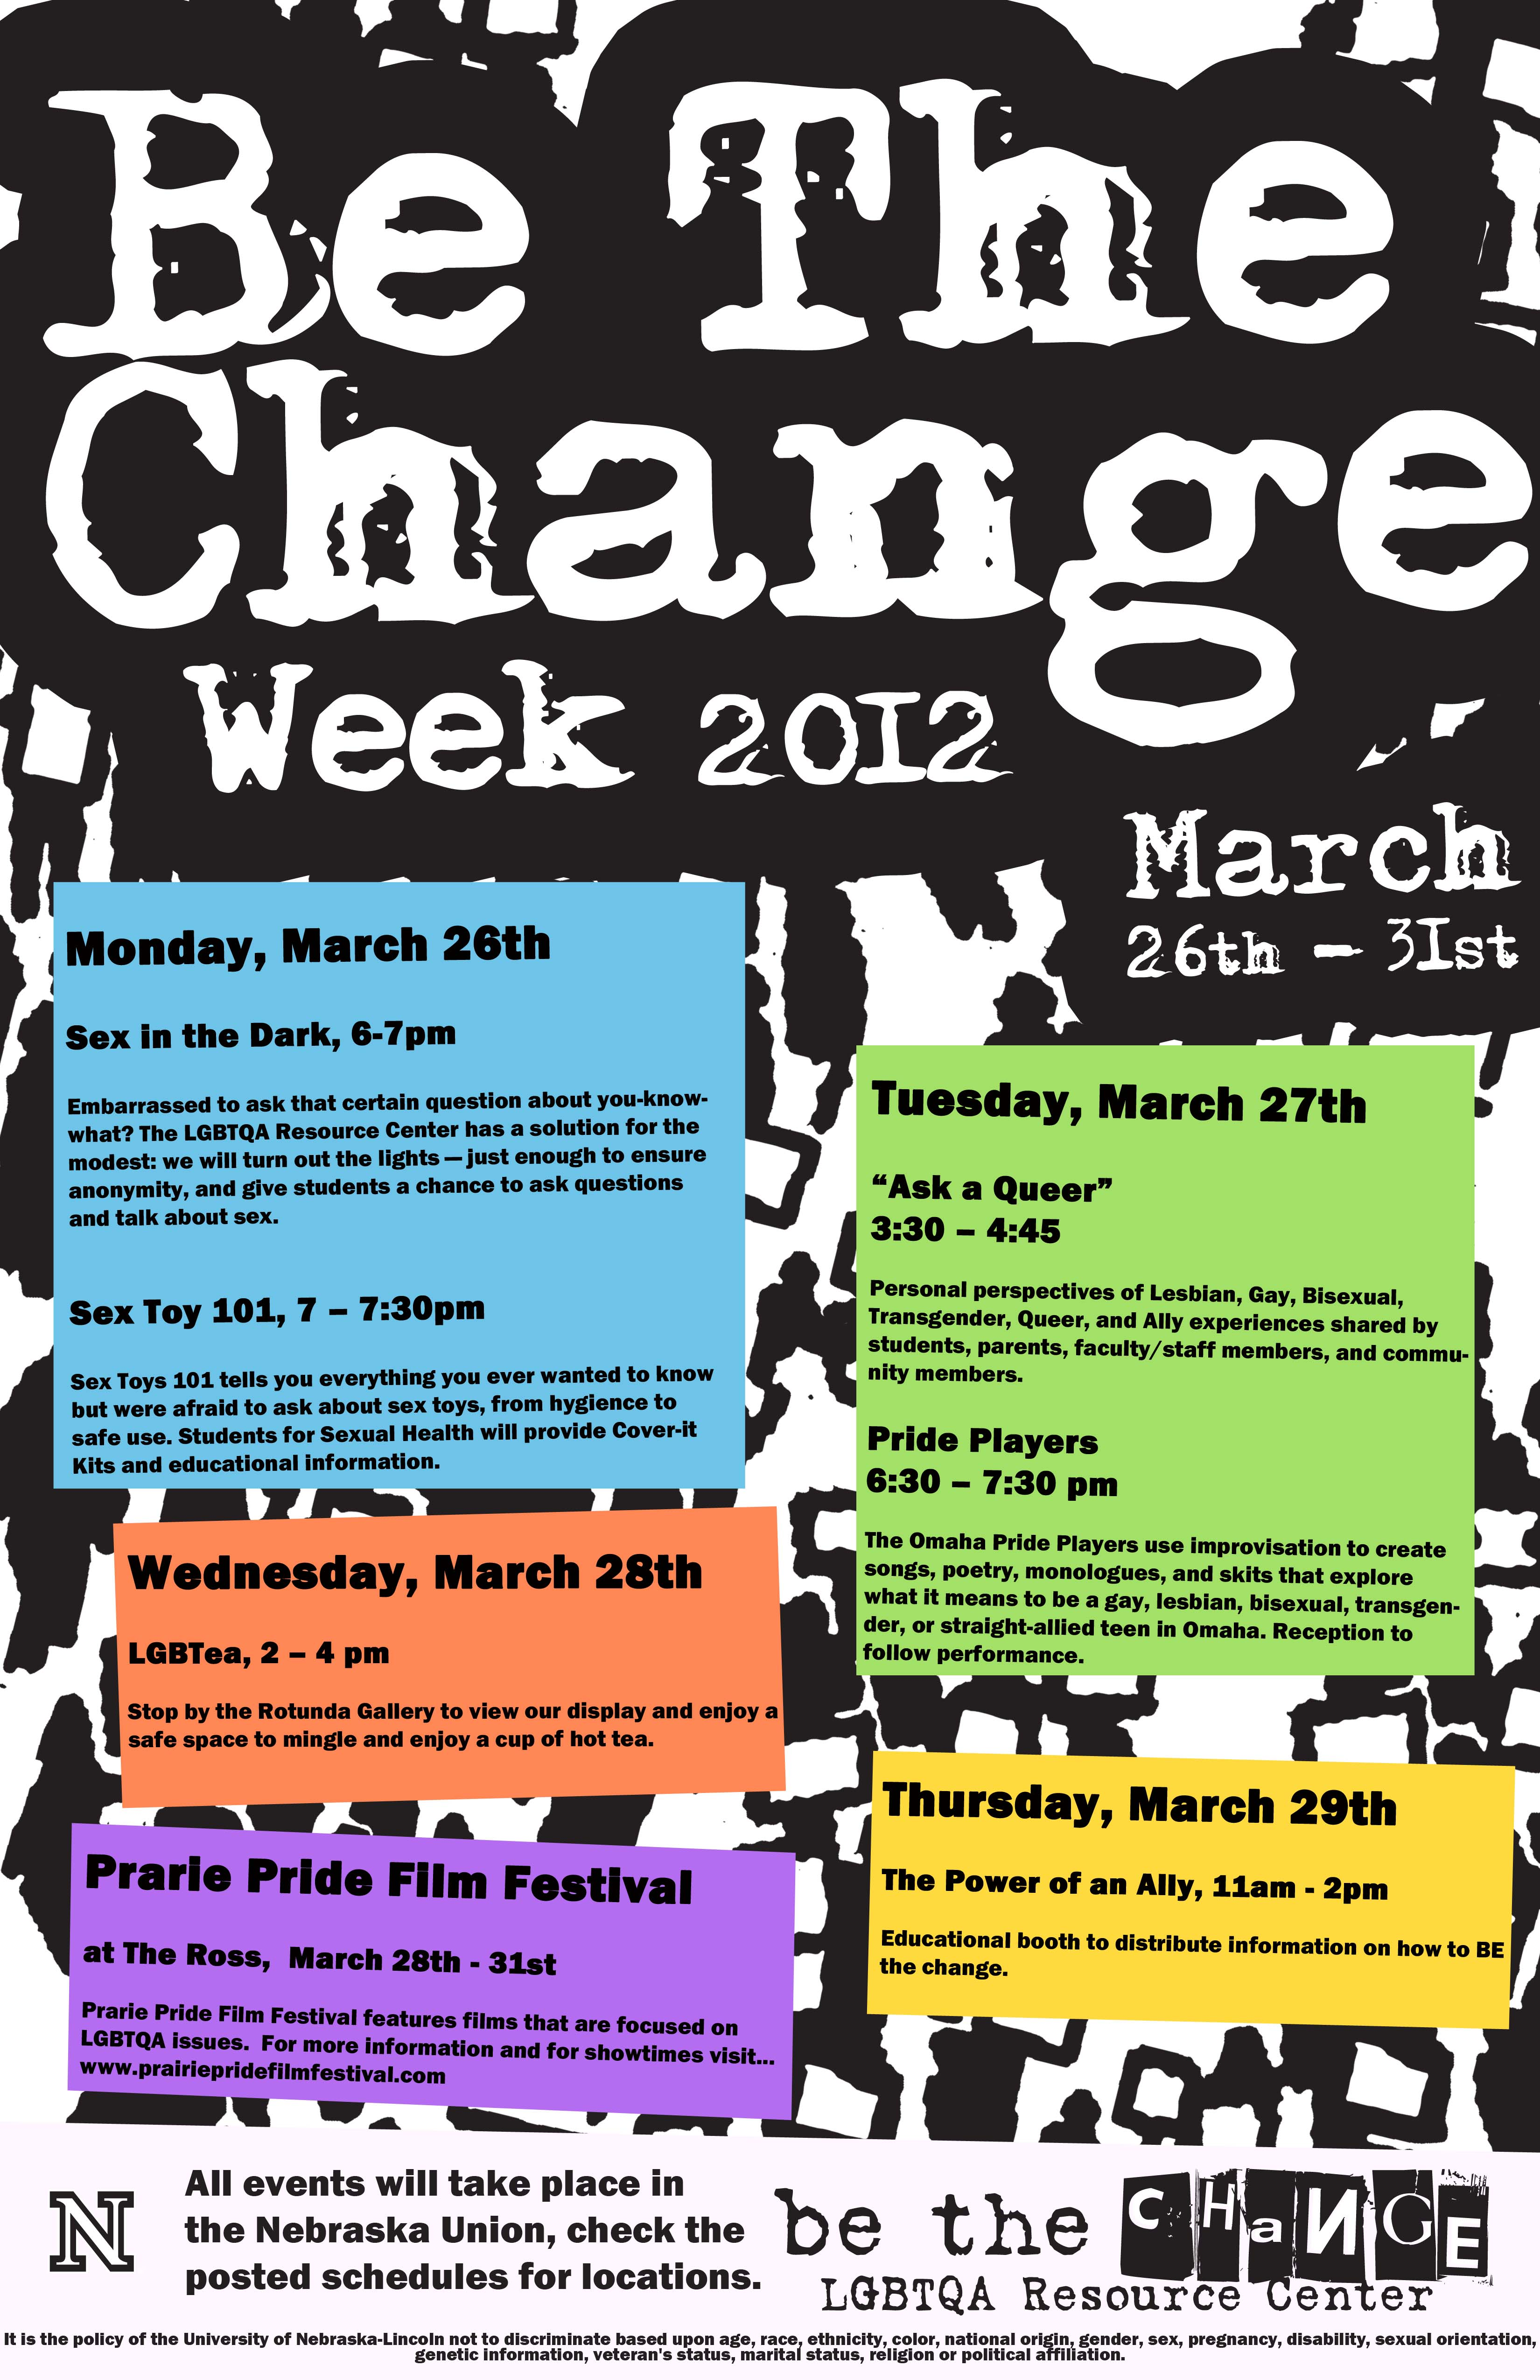 LGBTQA Resource Center hosts 'Be The Change Week 2012' - March 26th - 31st